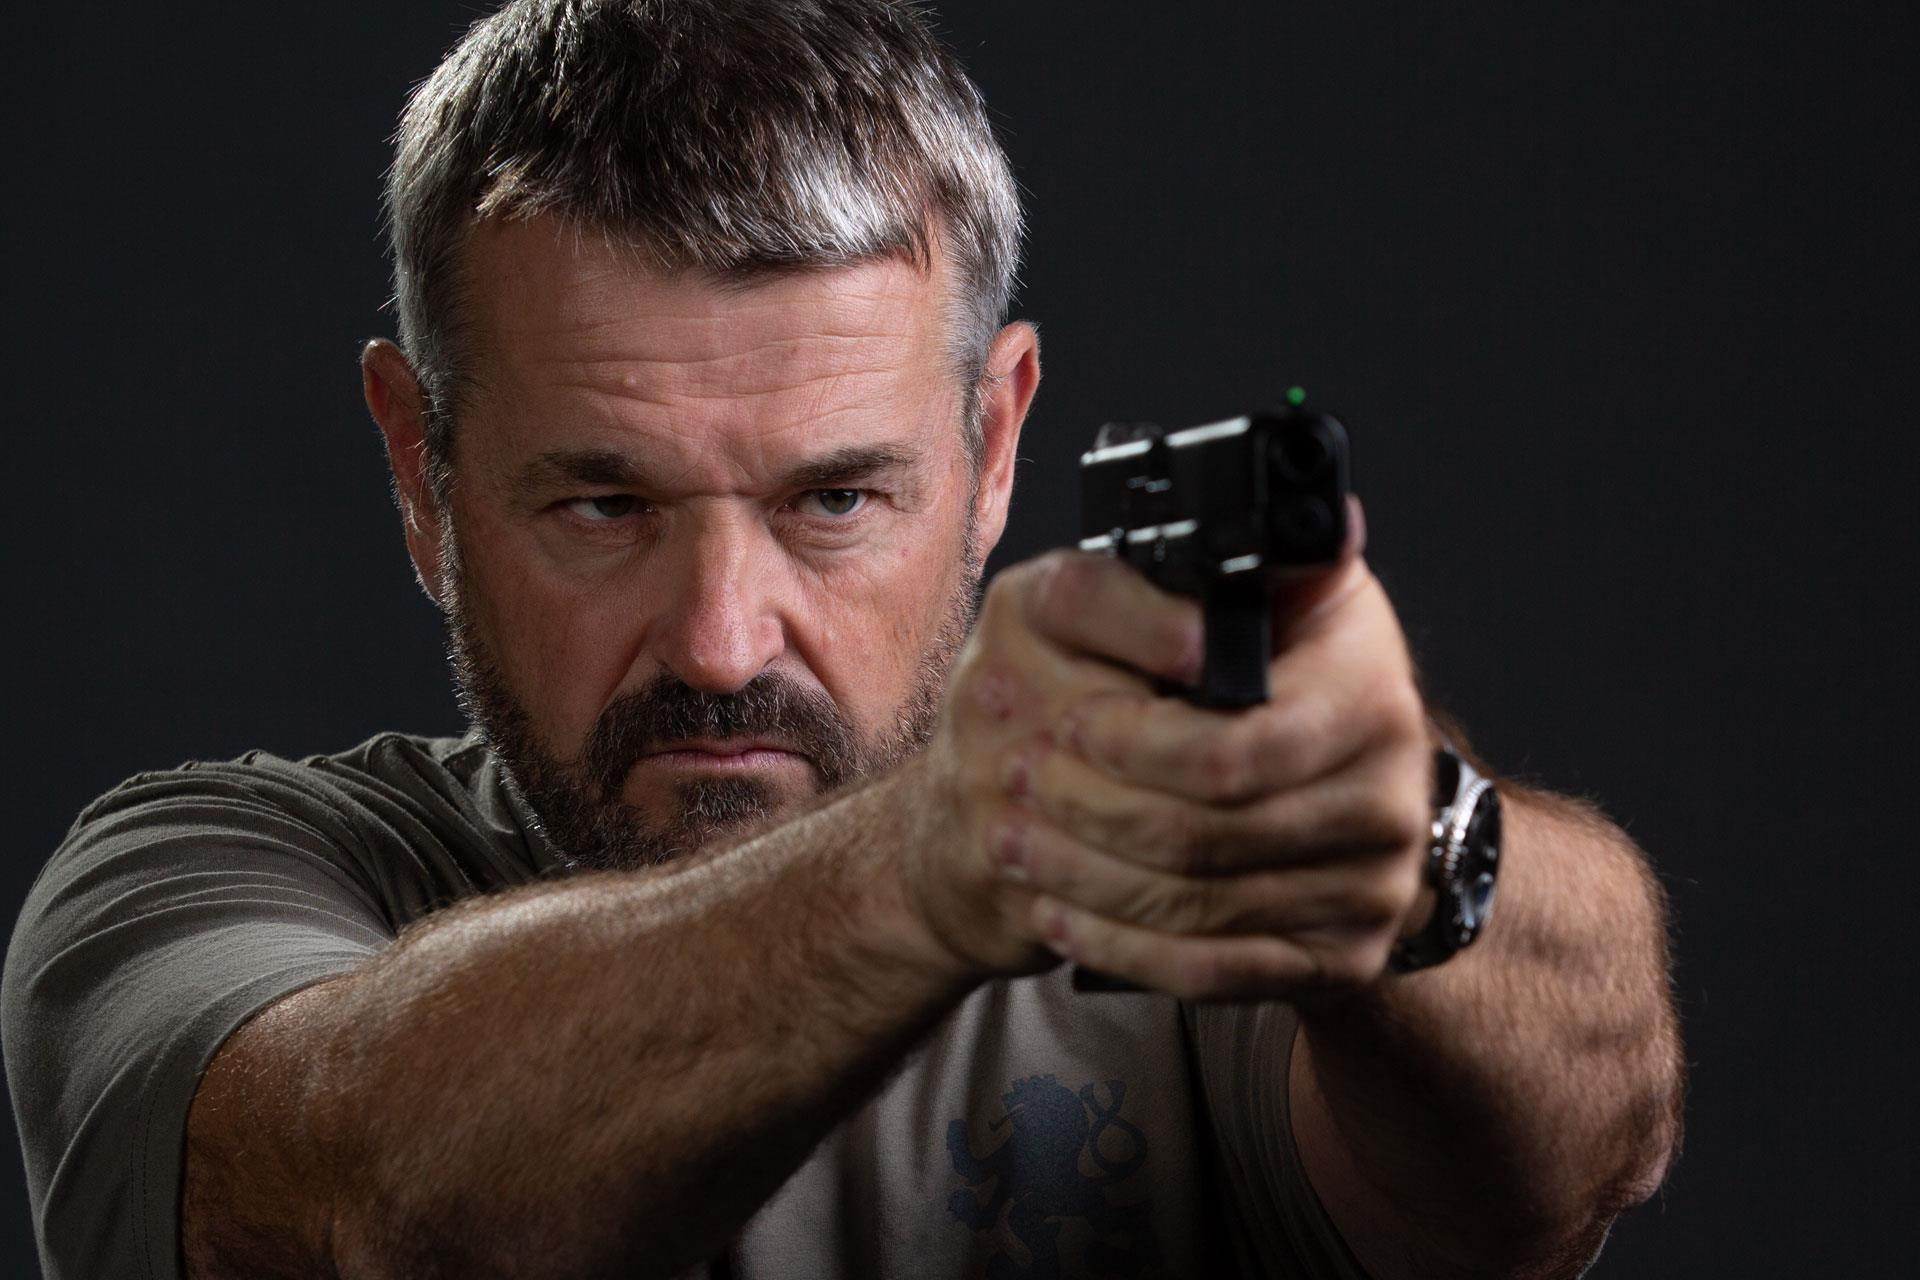 CCW SAFE TRAINING PARTNER: LARRY VICKERS